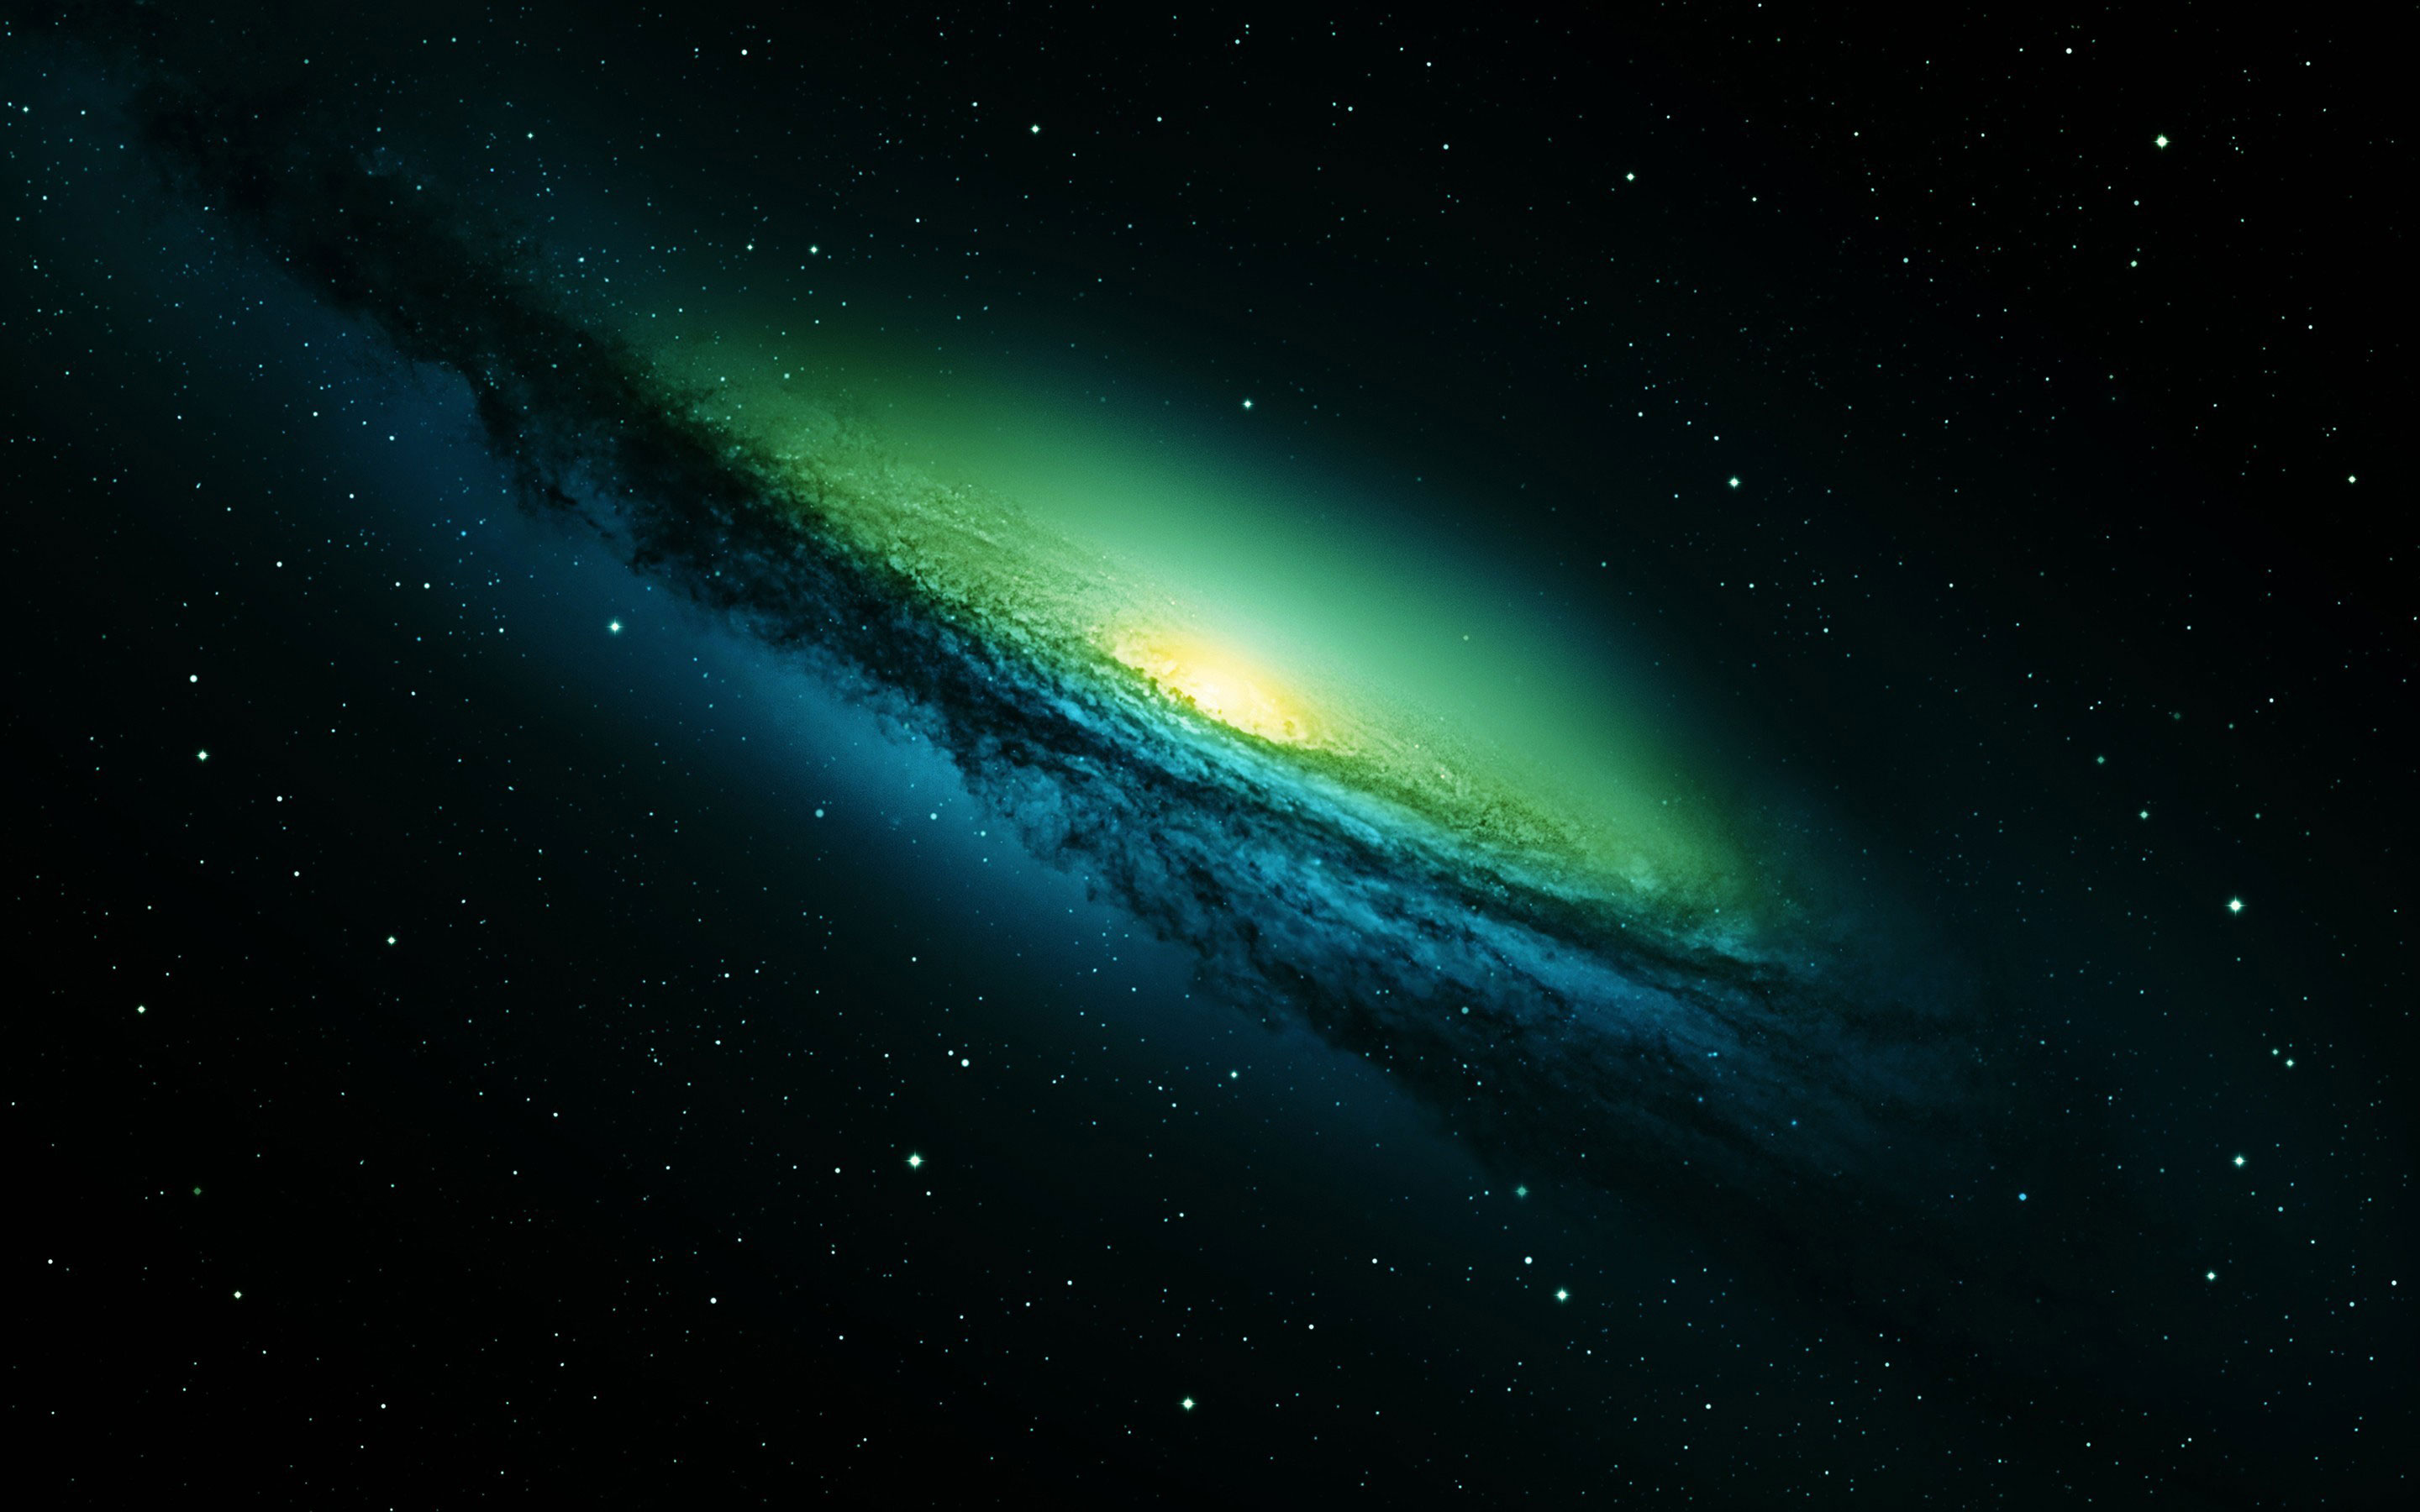 Galaxy Space Wallpaper For Android: 25+ Galaxy Wallpapers, Backgrounds, Images, Pictures